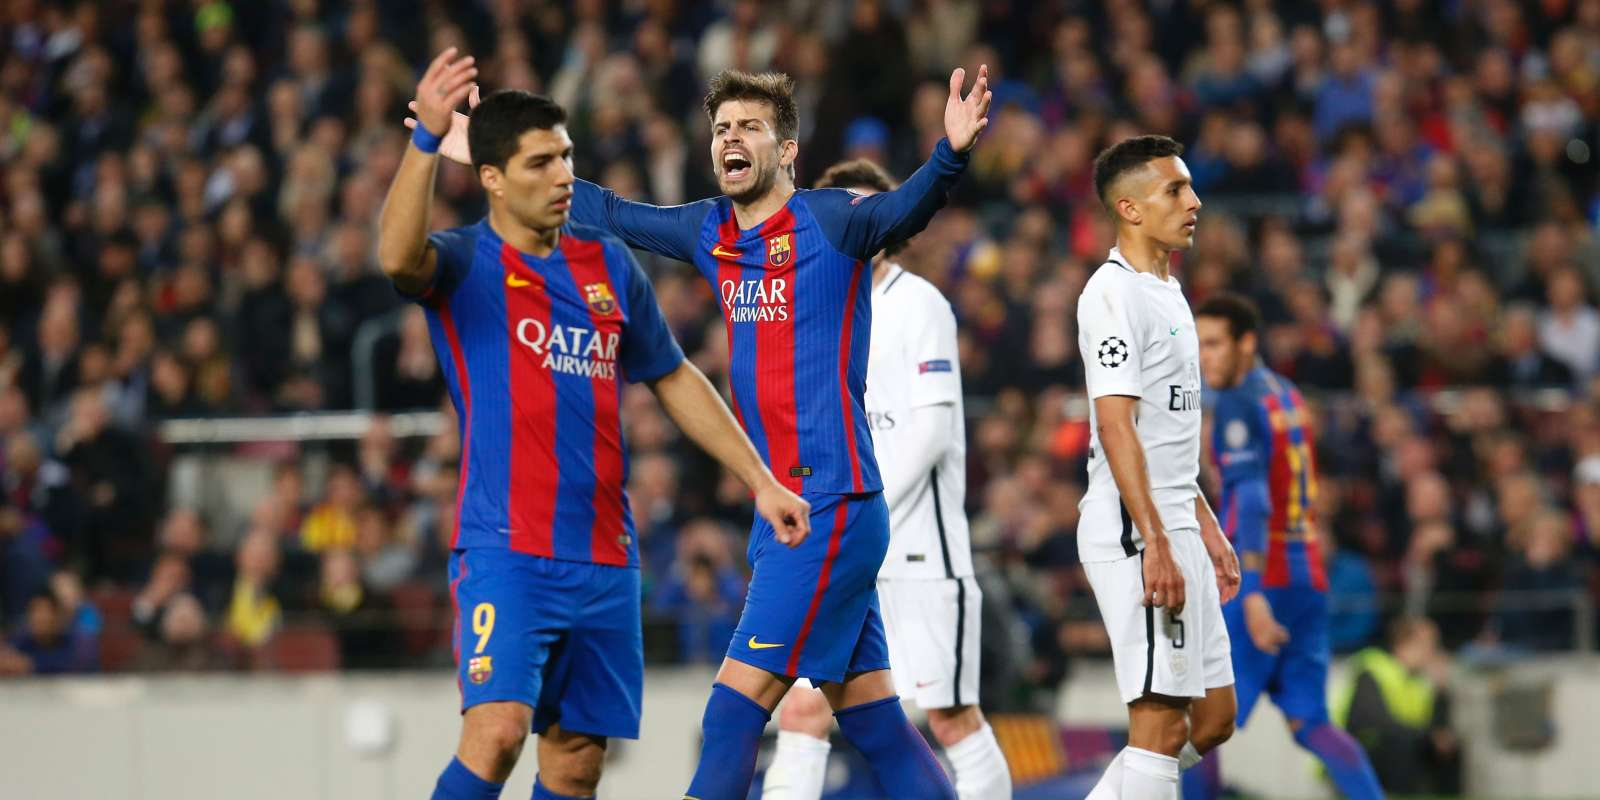 Barcelona's defender Gerard Pique (C) and Barcelona's Uruguayan forward Luis Suarez react to a decision of the referee during the UEFA Champions League round of 16 second leg football match FC Barcelona vs Paris Saint-Germain FC at the Camp Nou stadium in Barcelona on March 8, 2017. / AFP / PAU BARRENA